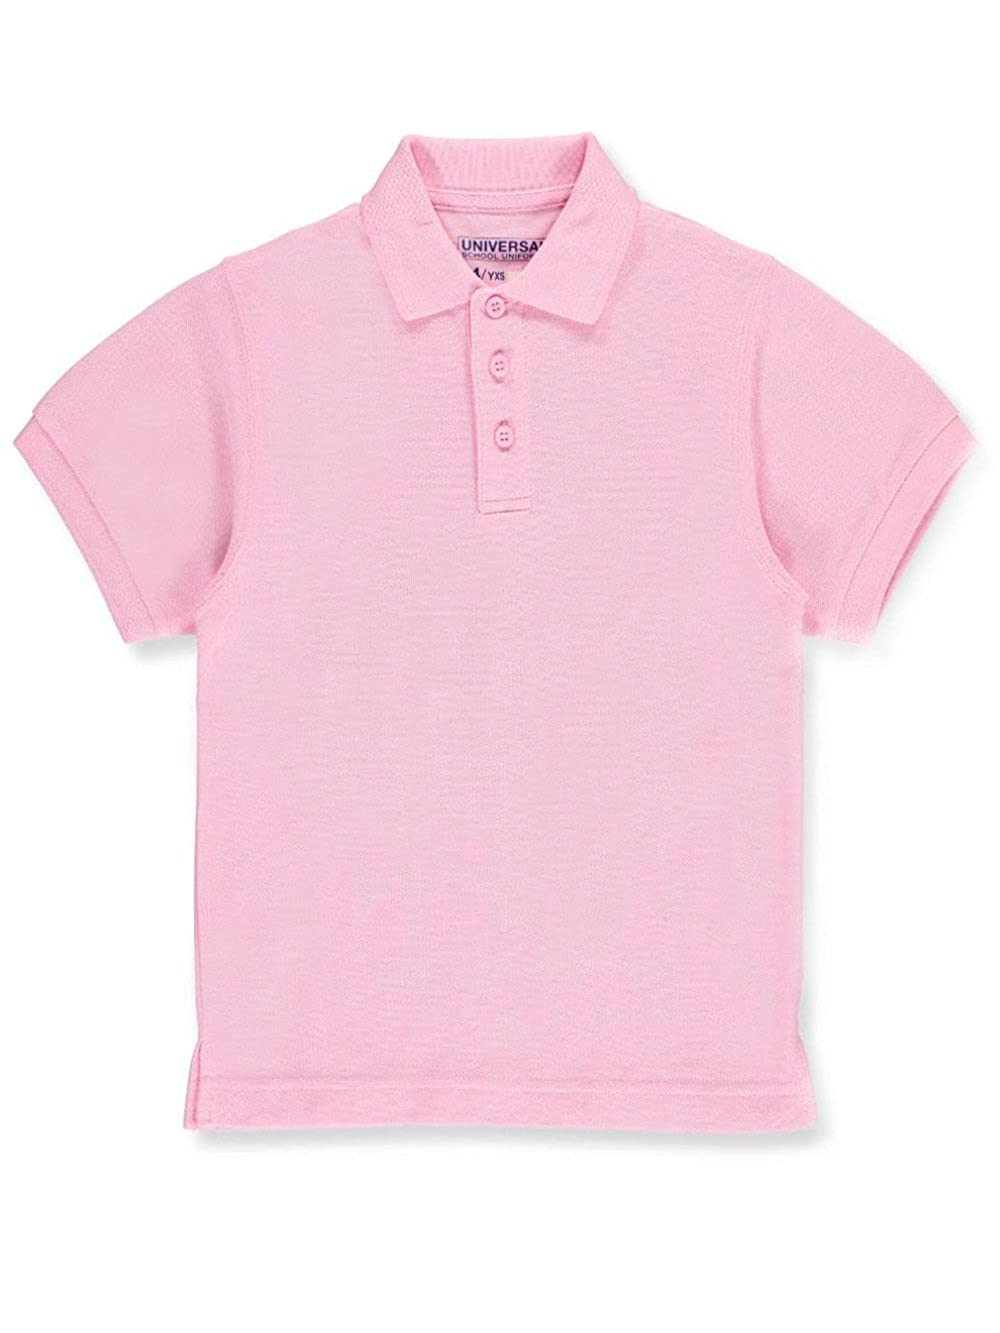 Children's Short Sleeve Pique Polo Shirt - Pink, 16 Universal 00_FSALFOCZ_02 Staniu838PNK16